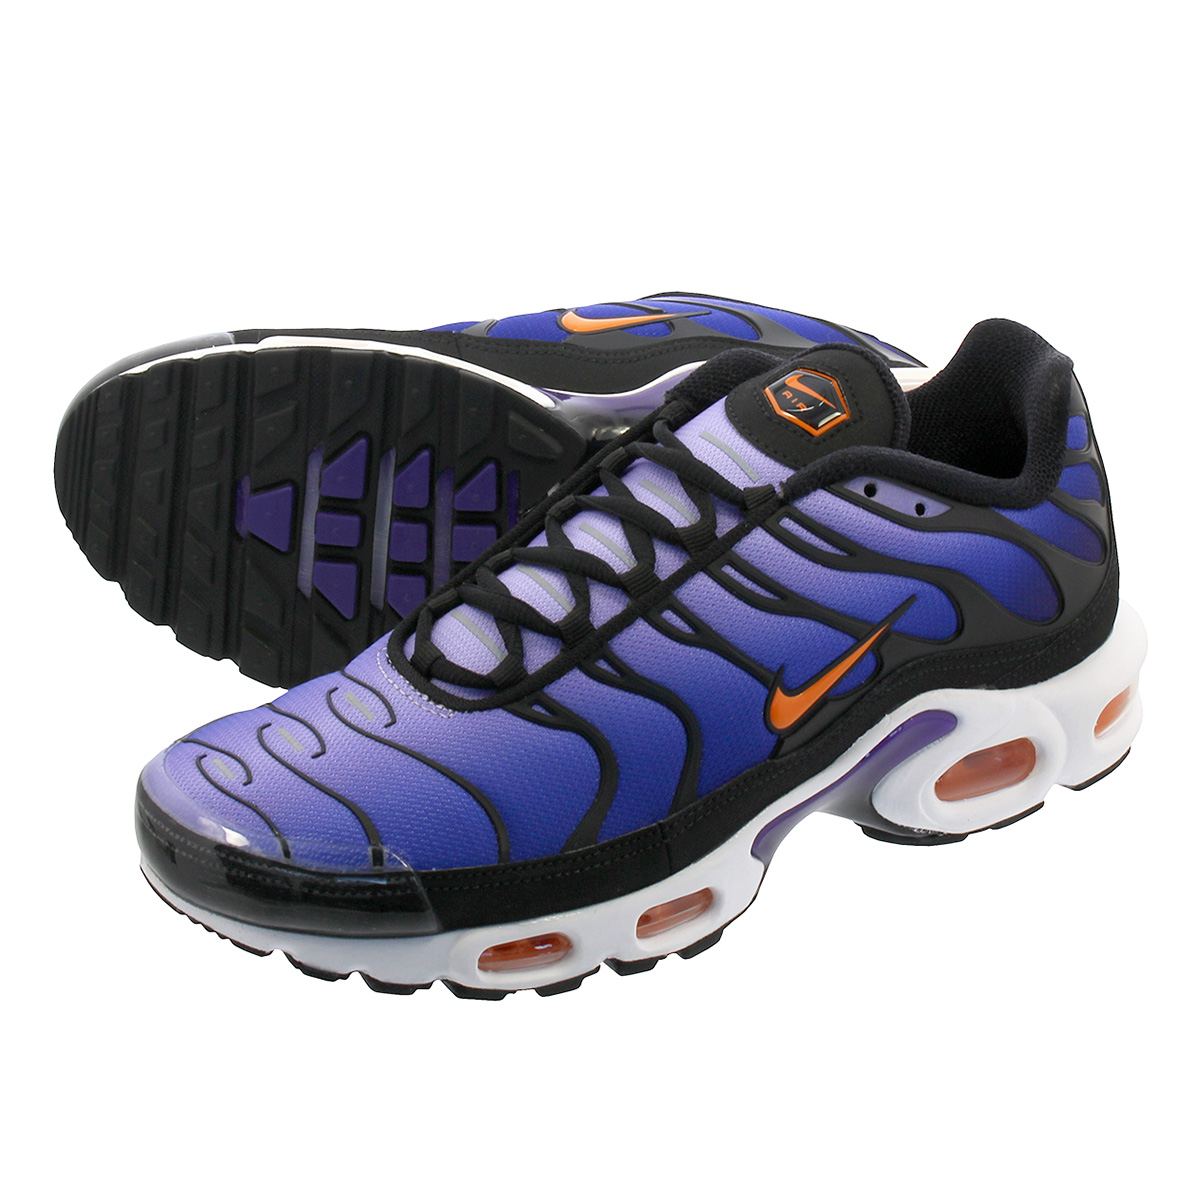 LOWTEX PLUS  NIKE AIR MAX PLUS OG Kie Ney AMAX plus OG BLACK TOTAL  ORANGE VOLTAGE PURPLE  467b3cb5e